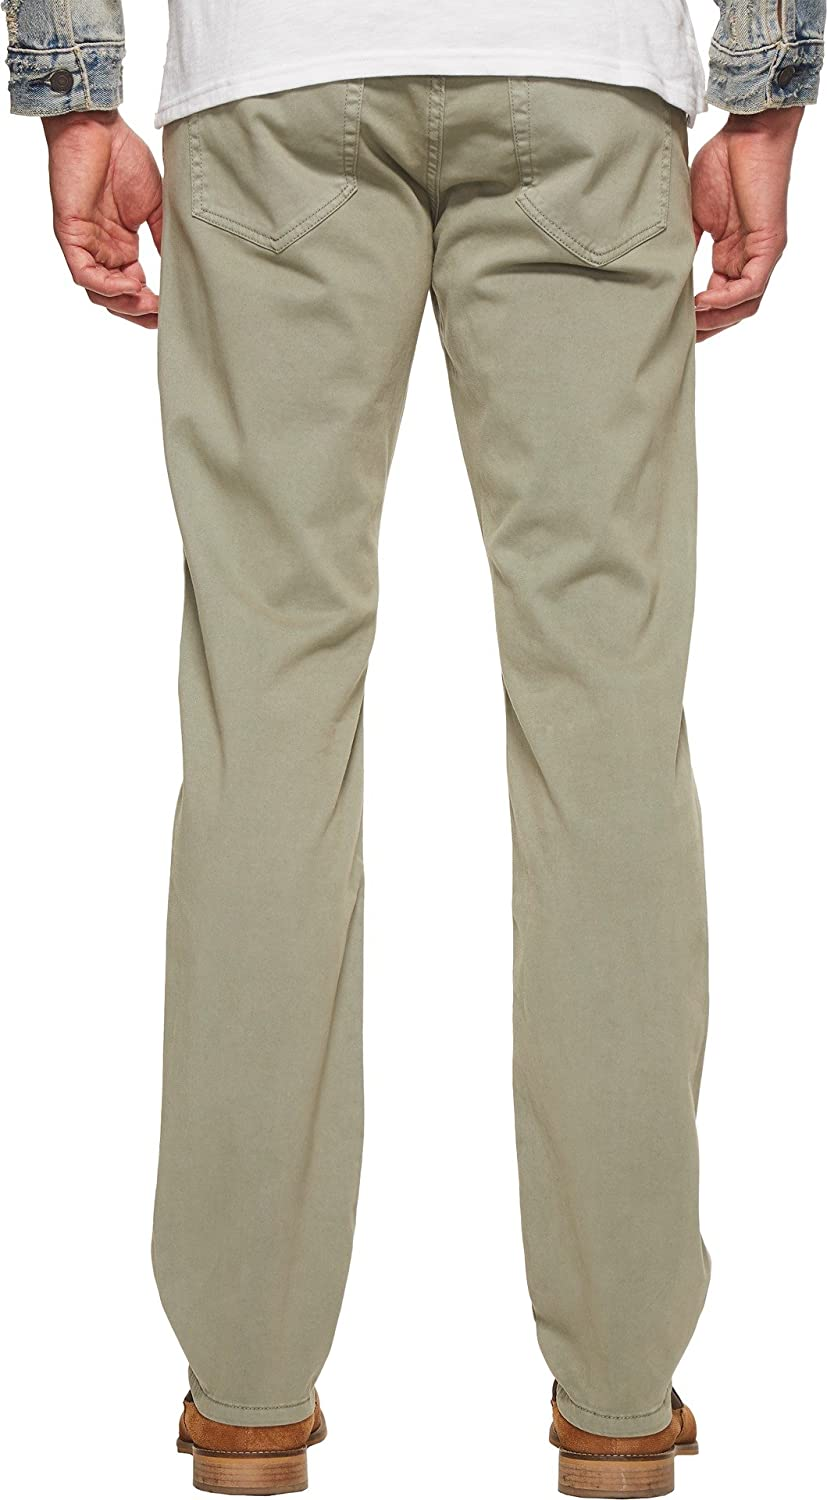 Joes Jeans Mens The Brixton Kinetic in Sea Grass